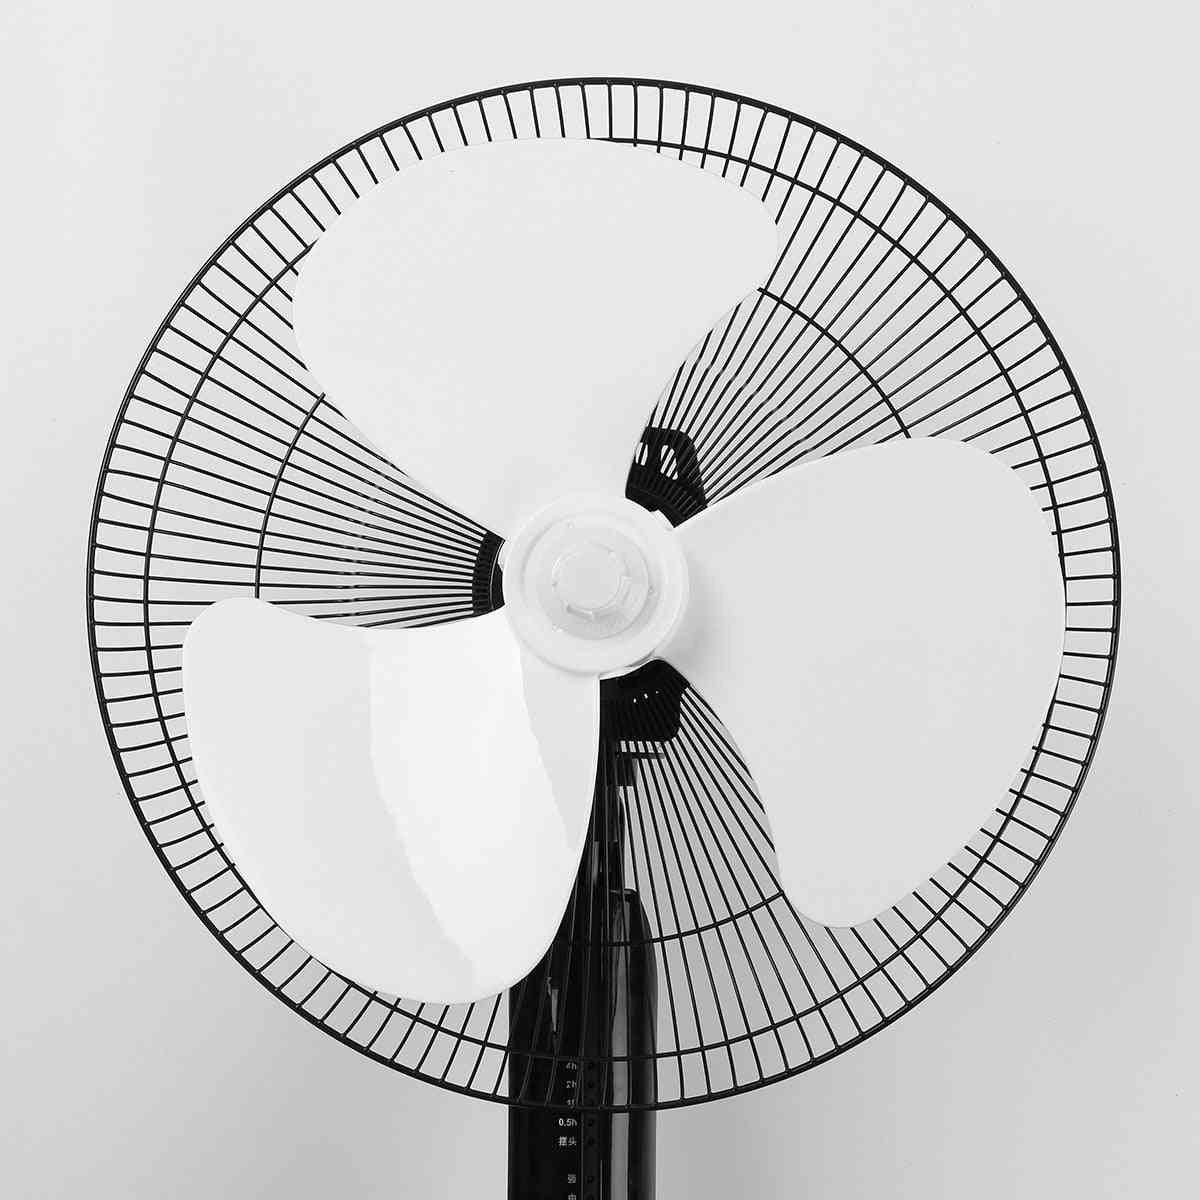 Durable Plastic And Removable Fan Blades For Household Table Fan